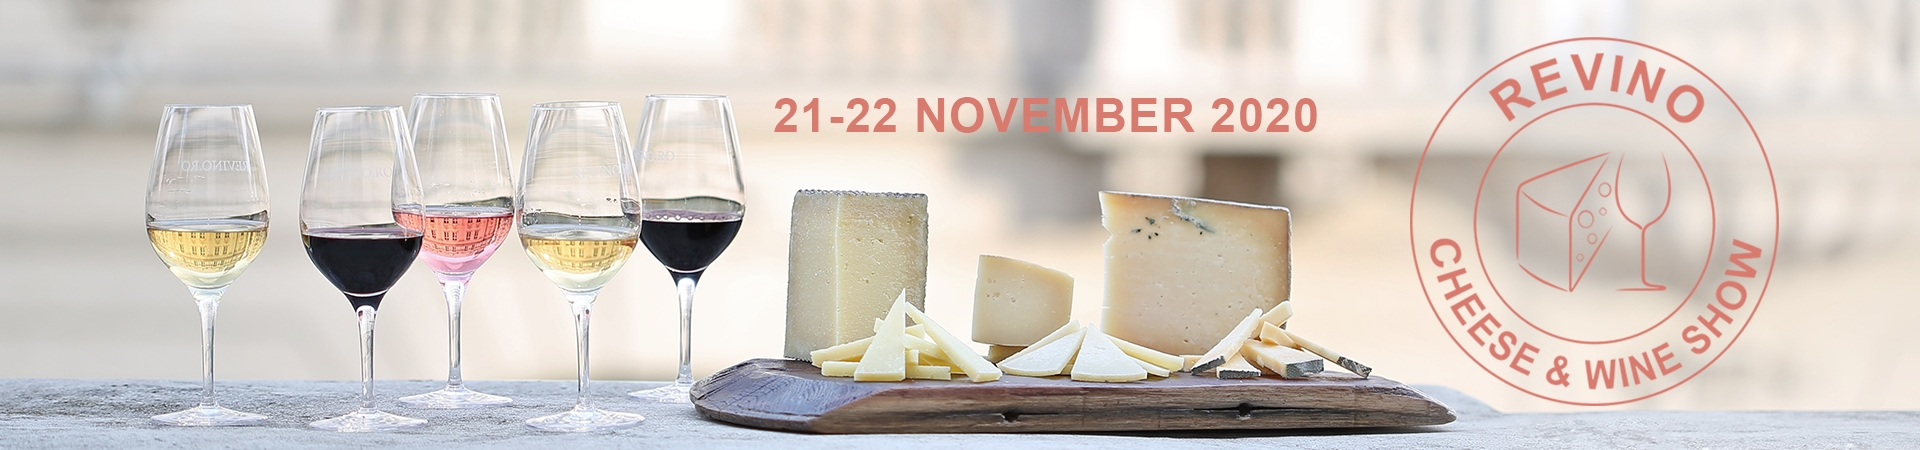 ReVino Bucharest Cheese & Wine Show 2020